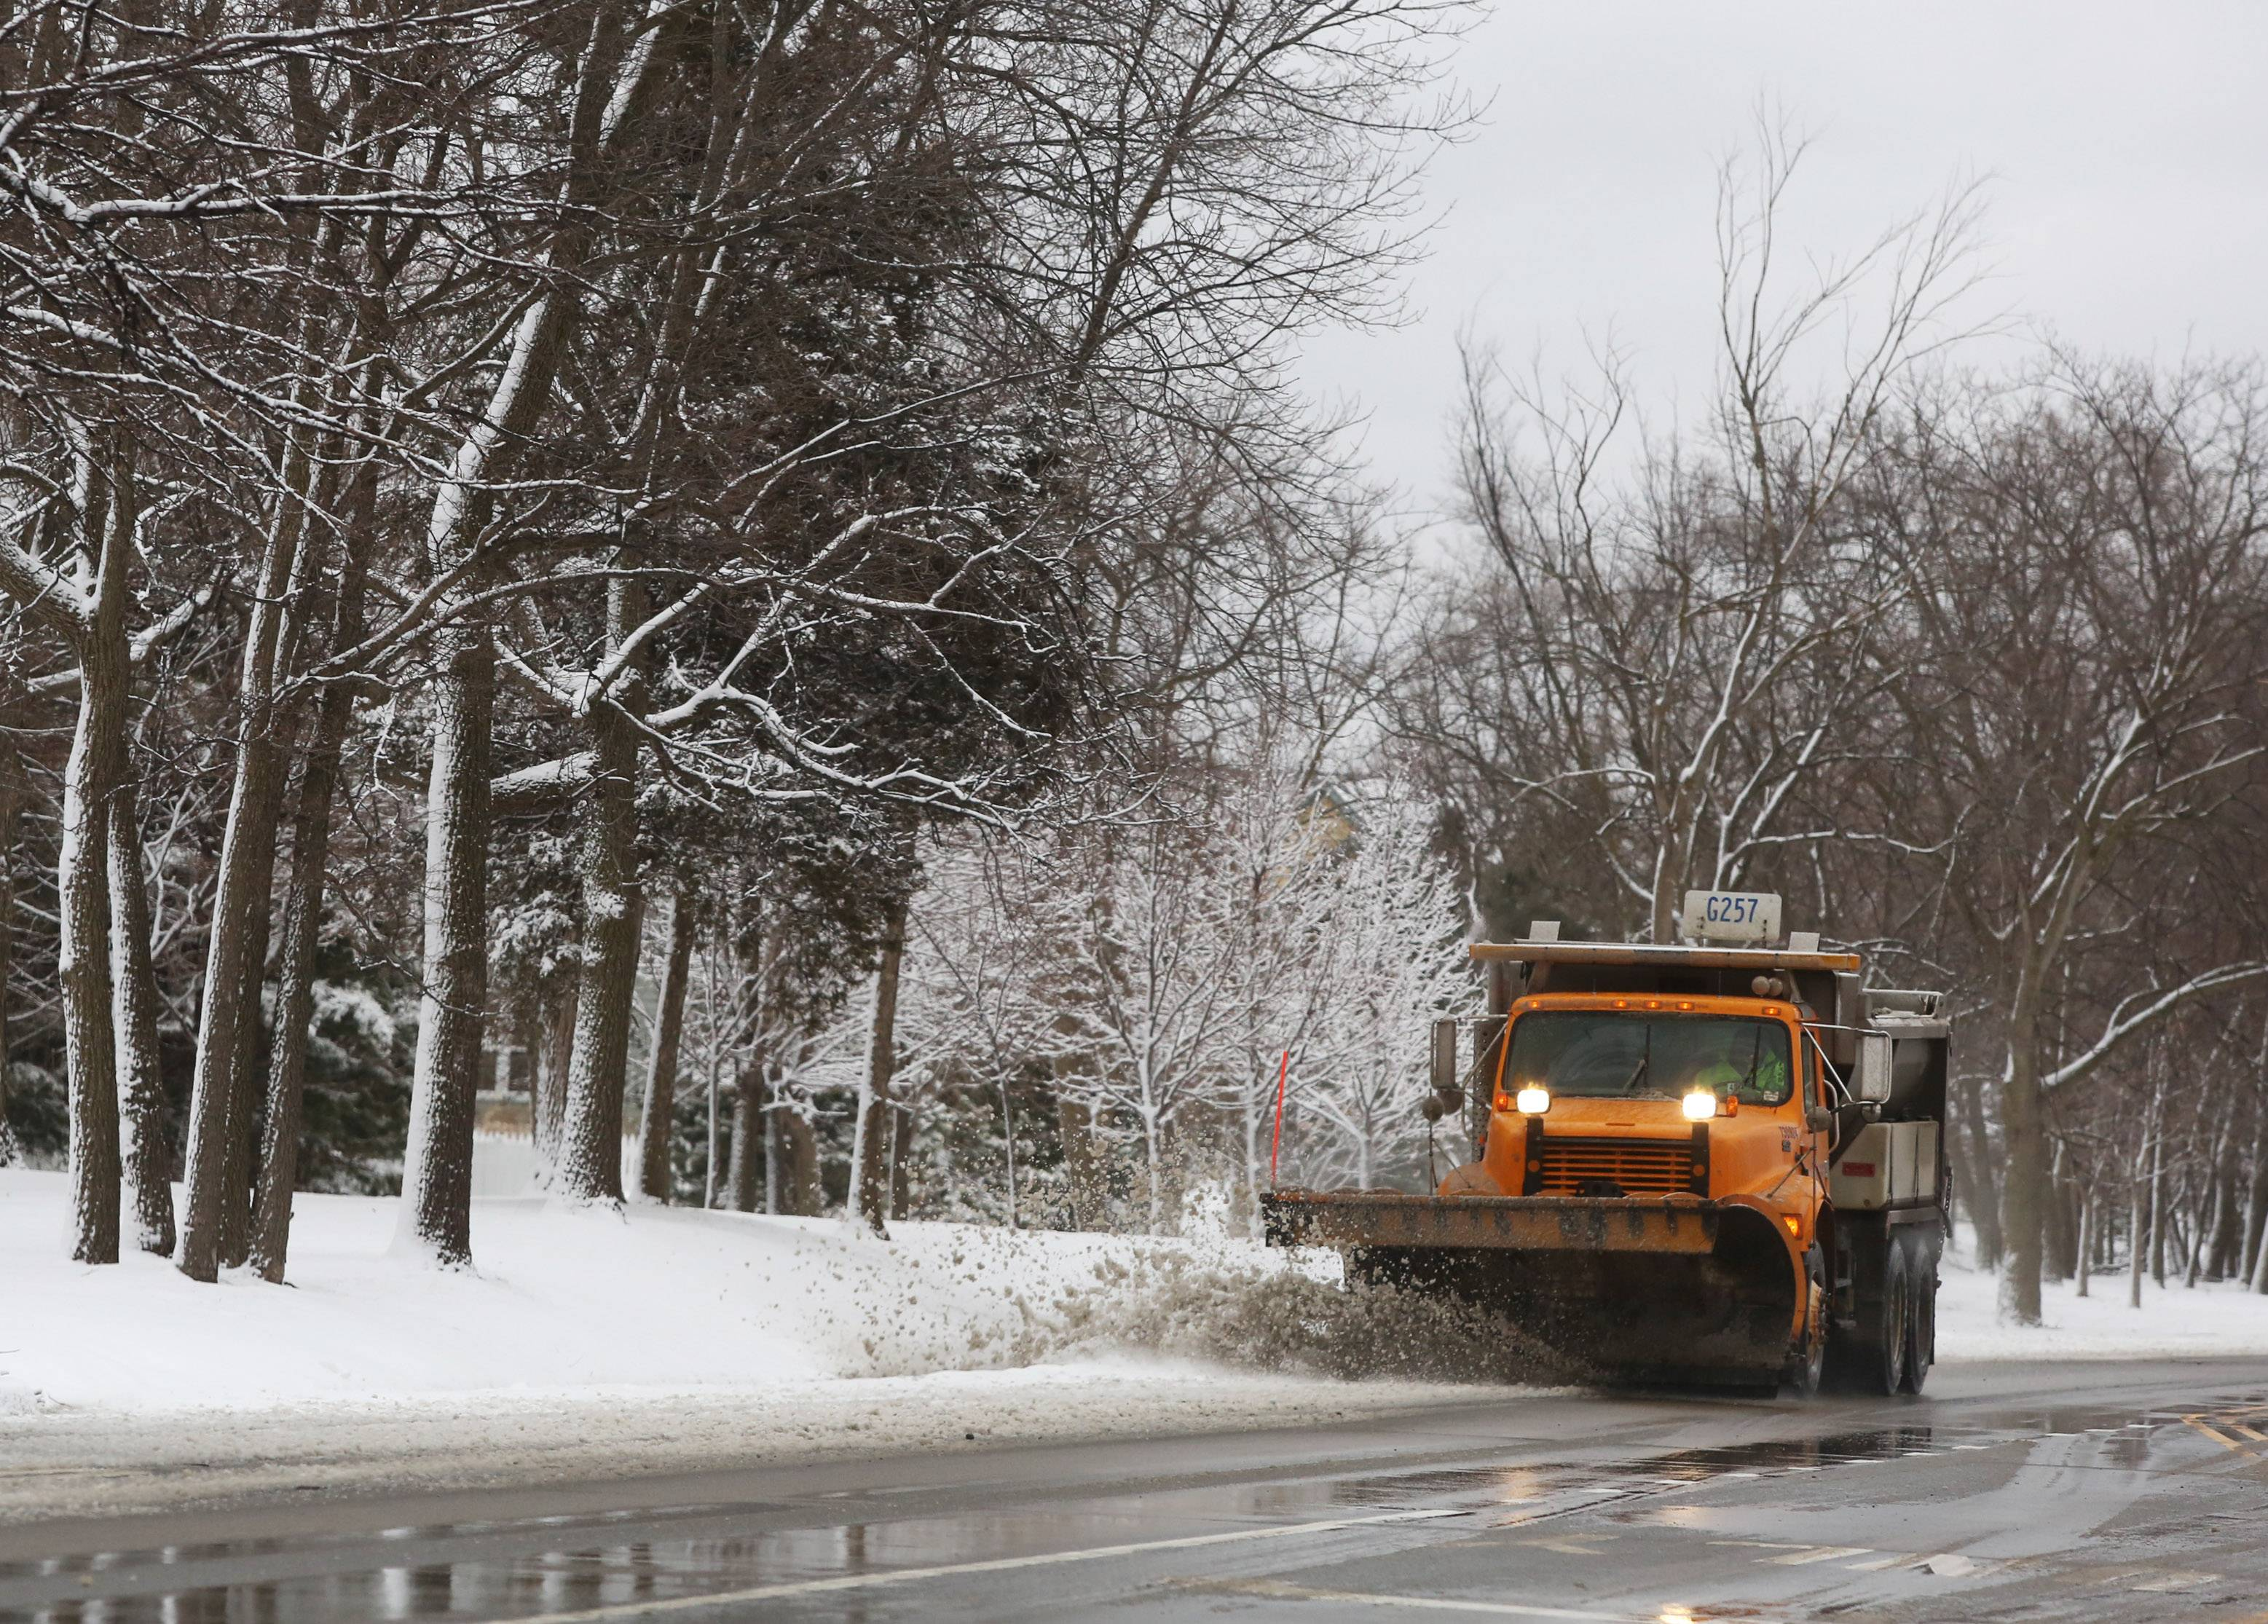 An Illinois Department of Transportation snowplow clears Route 45 in Vernon Hills as area residents woke up to snow-covered streets Wednesday morning in Lake County. The additional snow makes this the third snowiest winter on record.